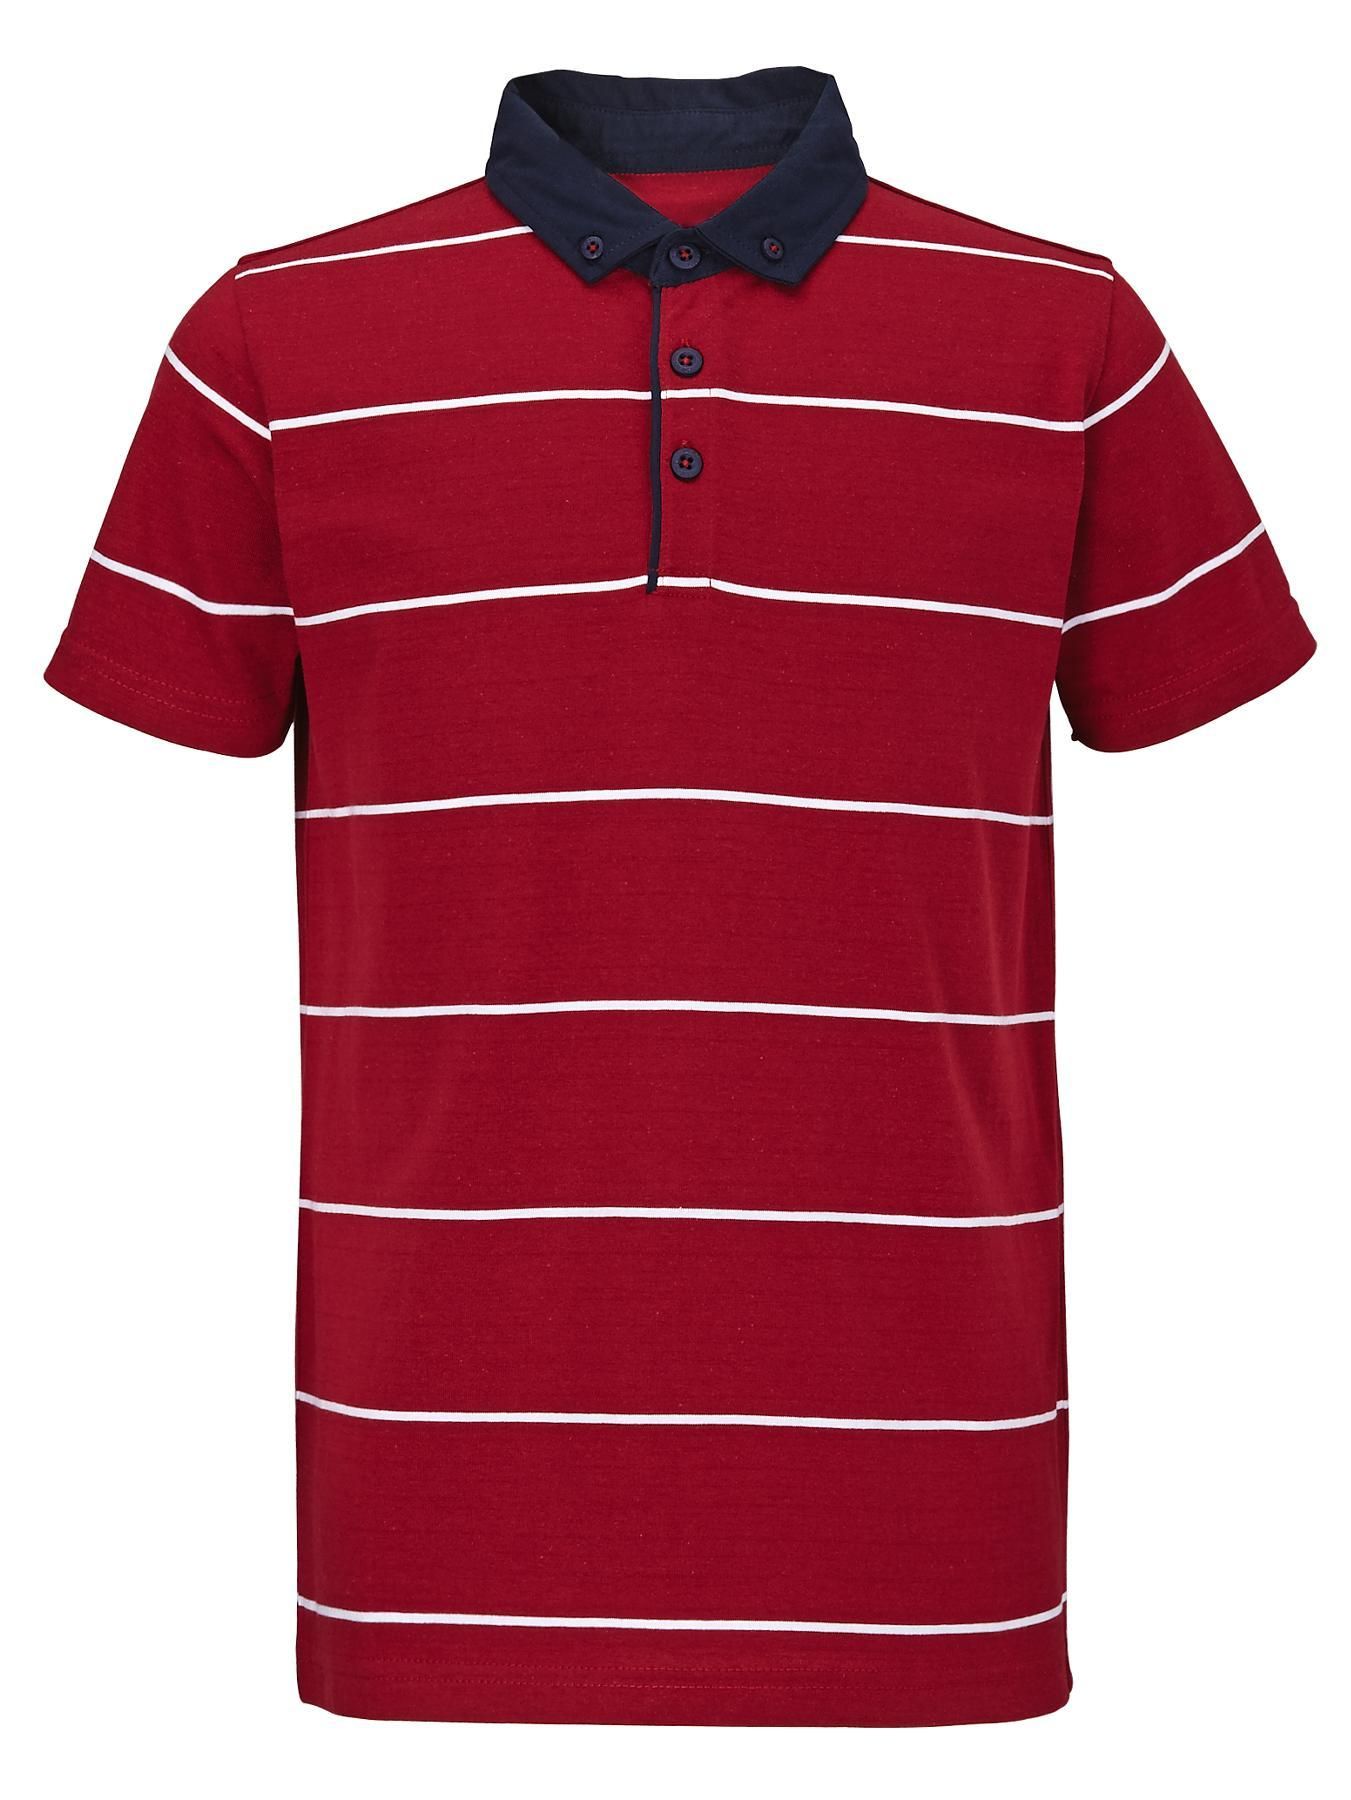 Boys Printed Jersey Polo Shirt